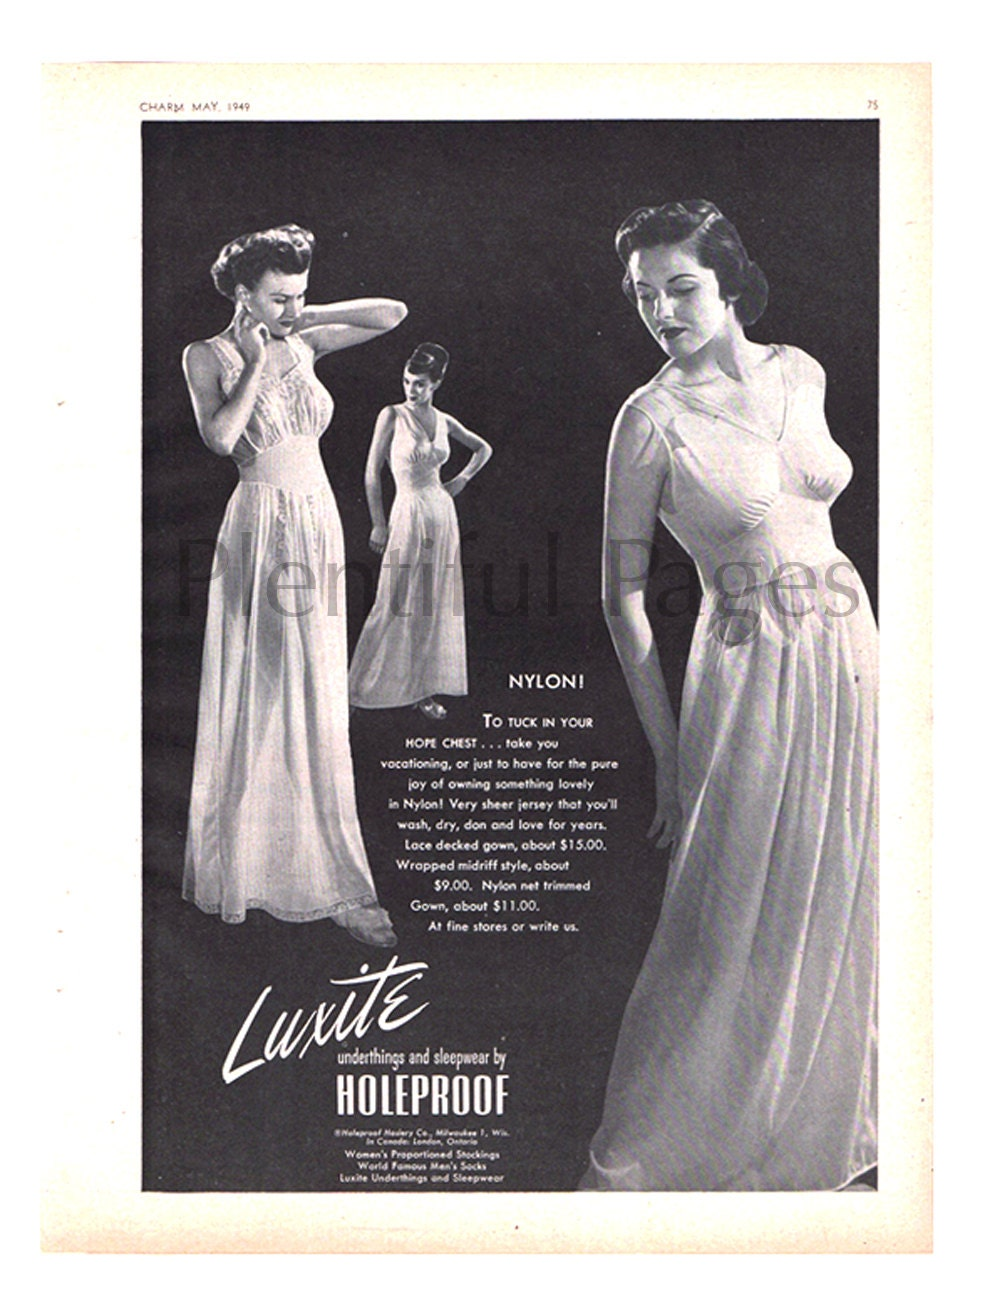 1949 Luxite Vintage Ad, 1940's Fashion, Retro Nightgowns, Nylon,  Advertising Art, 1940's Lingerie, 1940's Sleepwear, Great to Frame